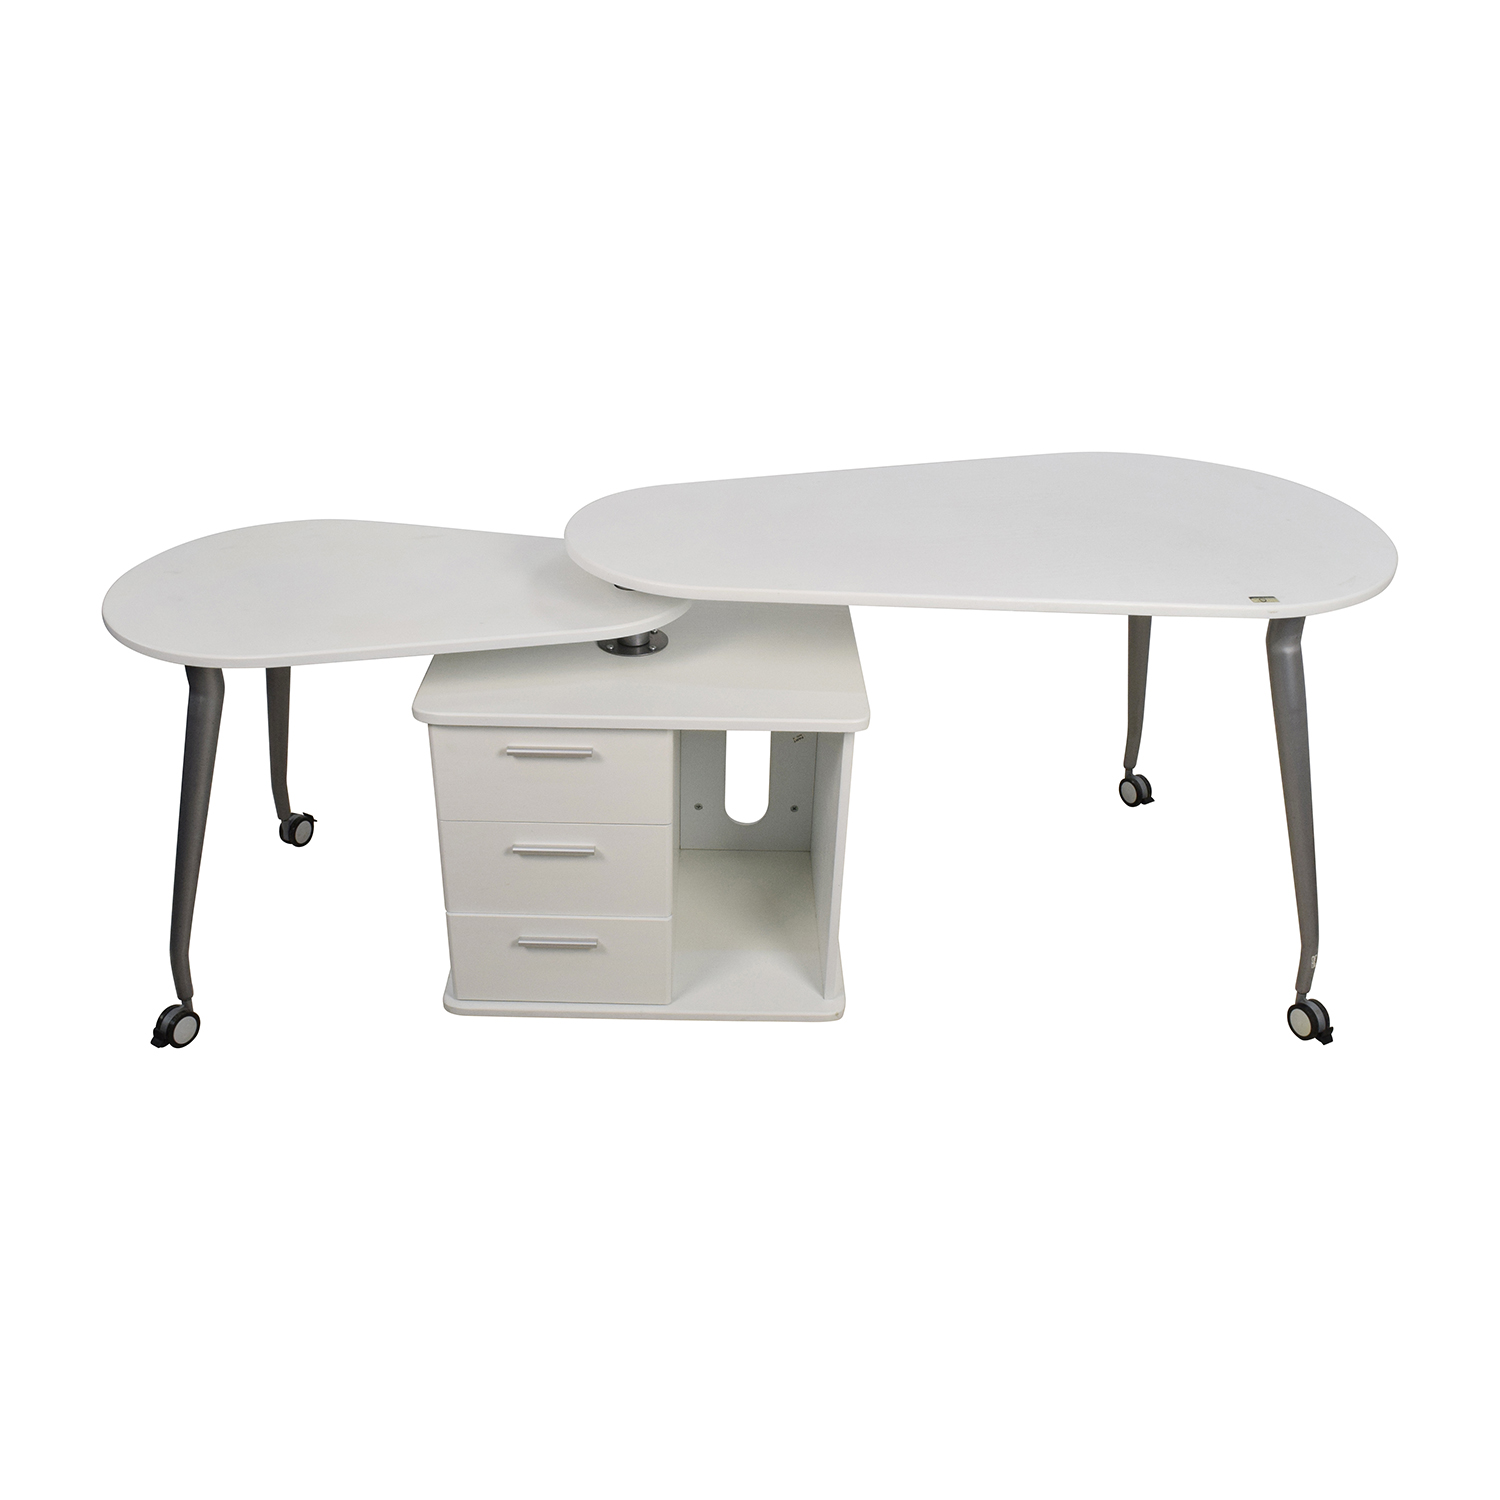 Techni Mobili White Swivel Desk discount